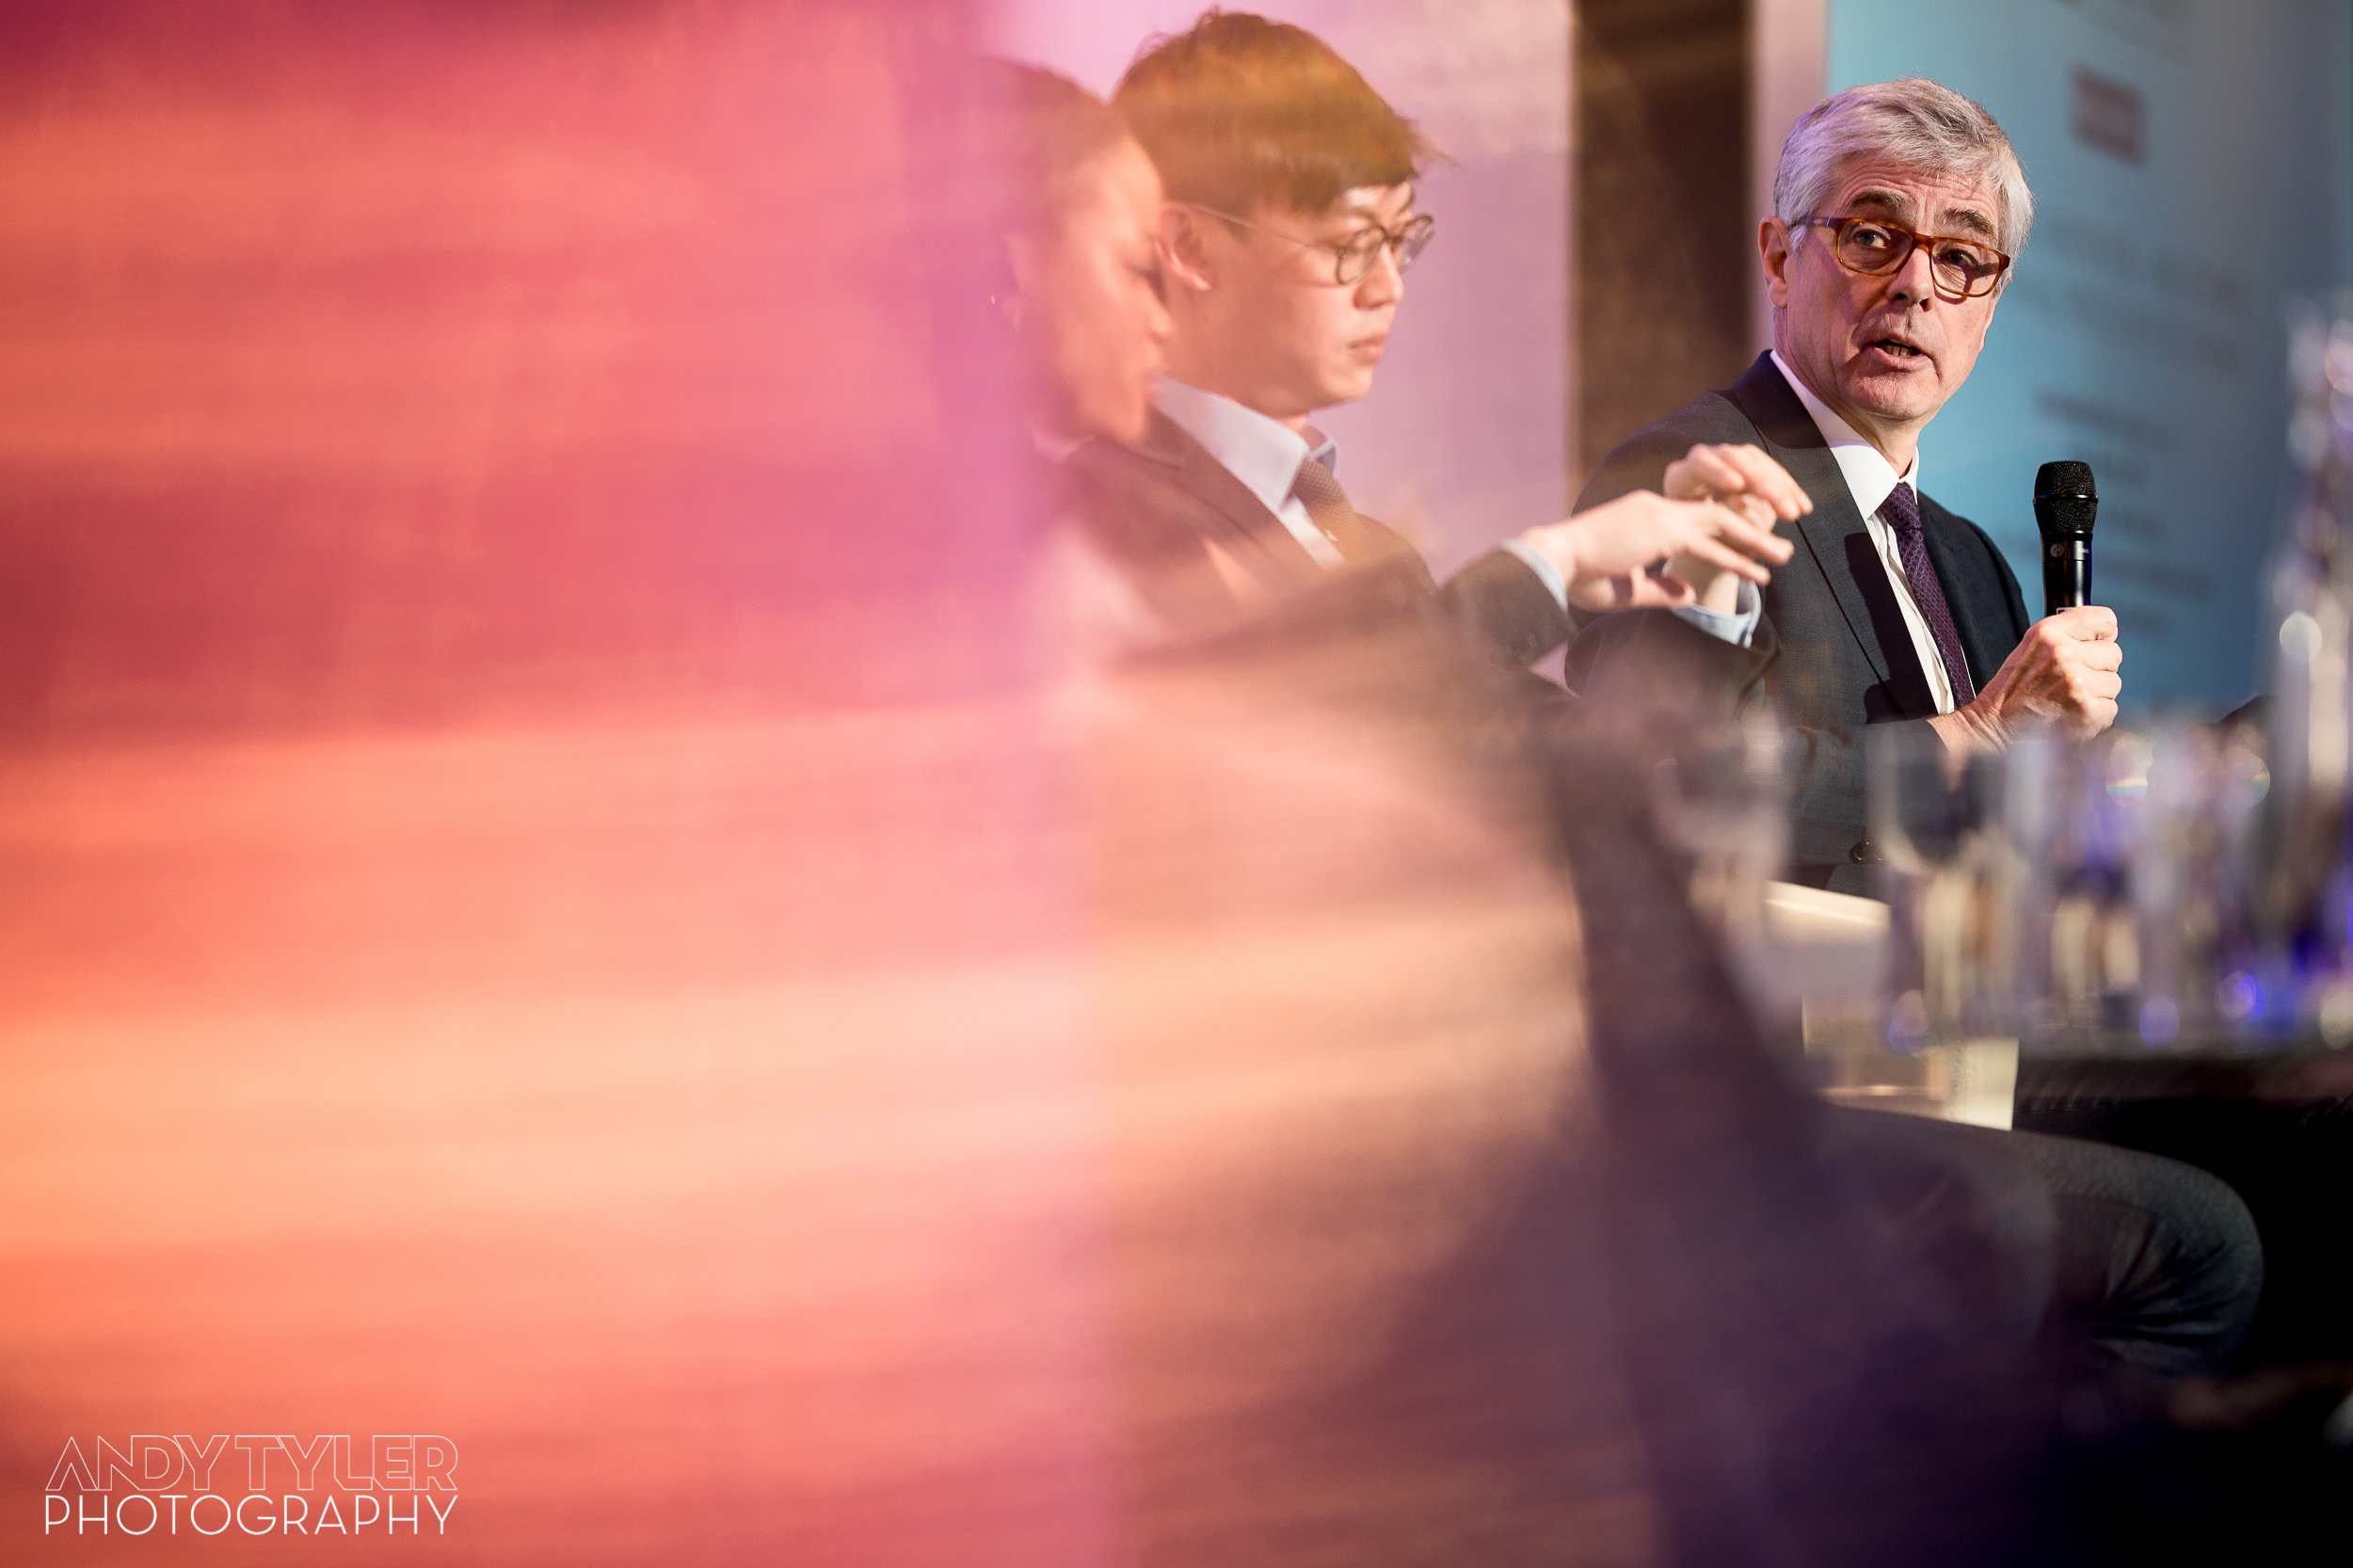 Andy_Tyler_Photography_Business_Conference_009_Andy_Tyler_Photography_189_5DA_0794.jpg